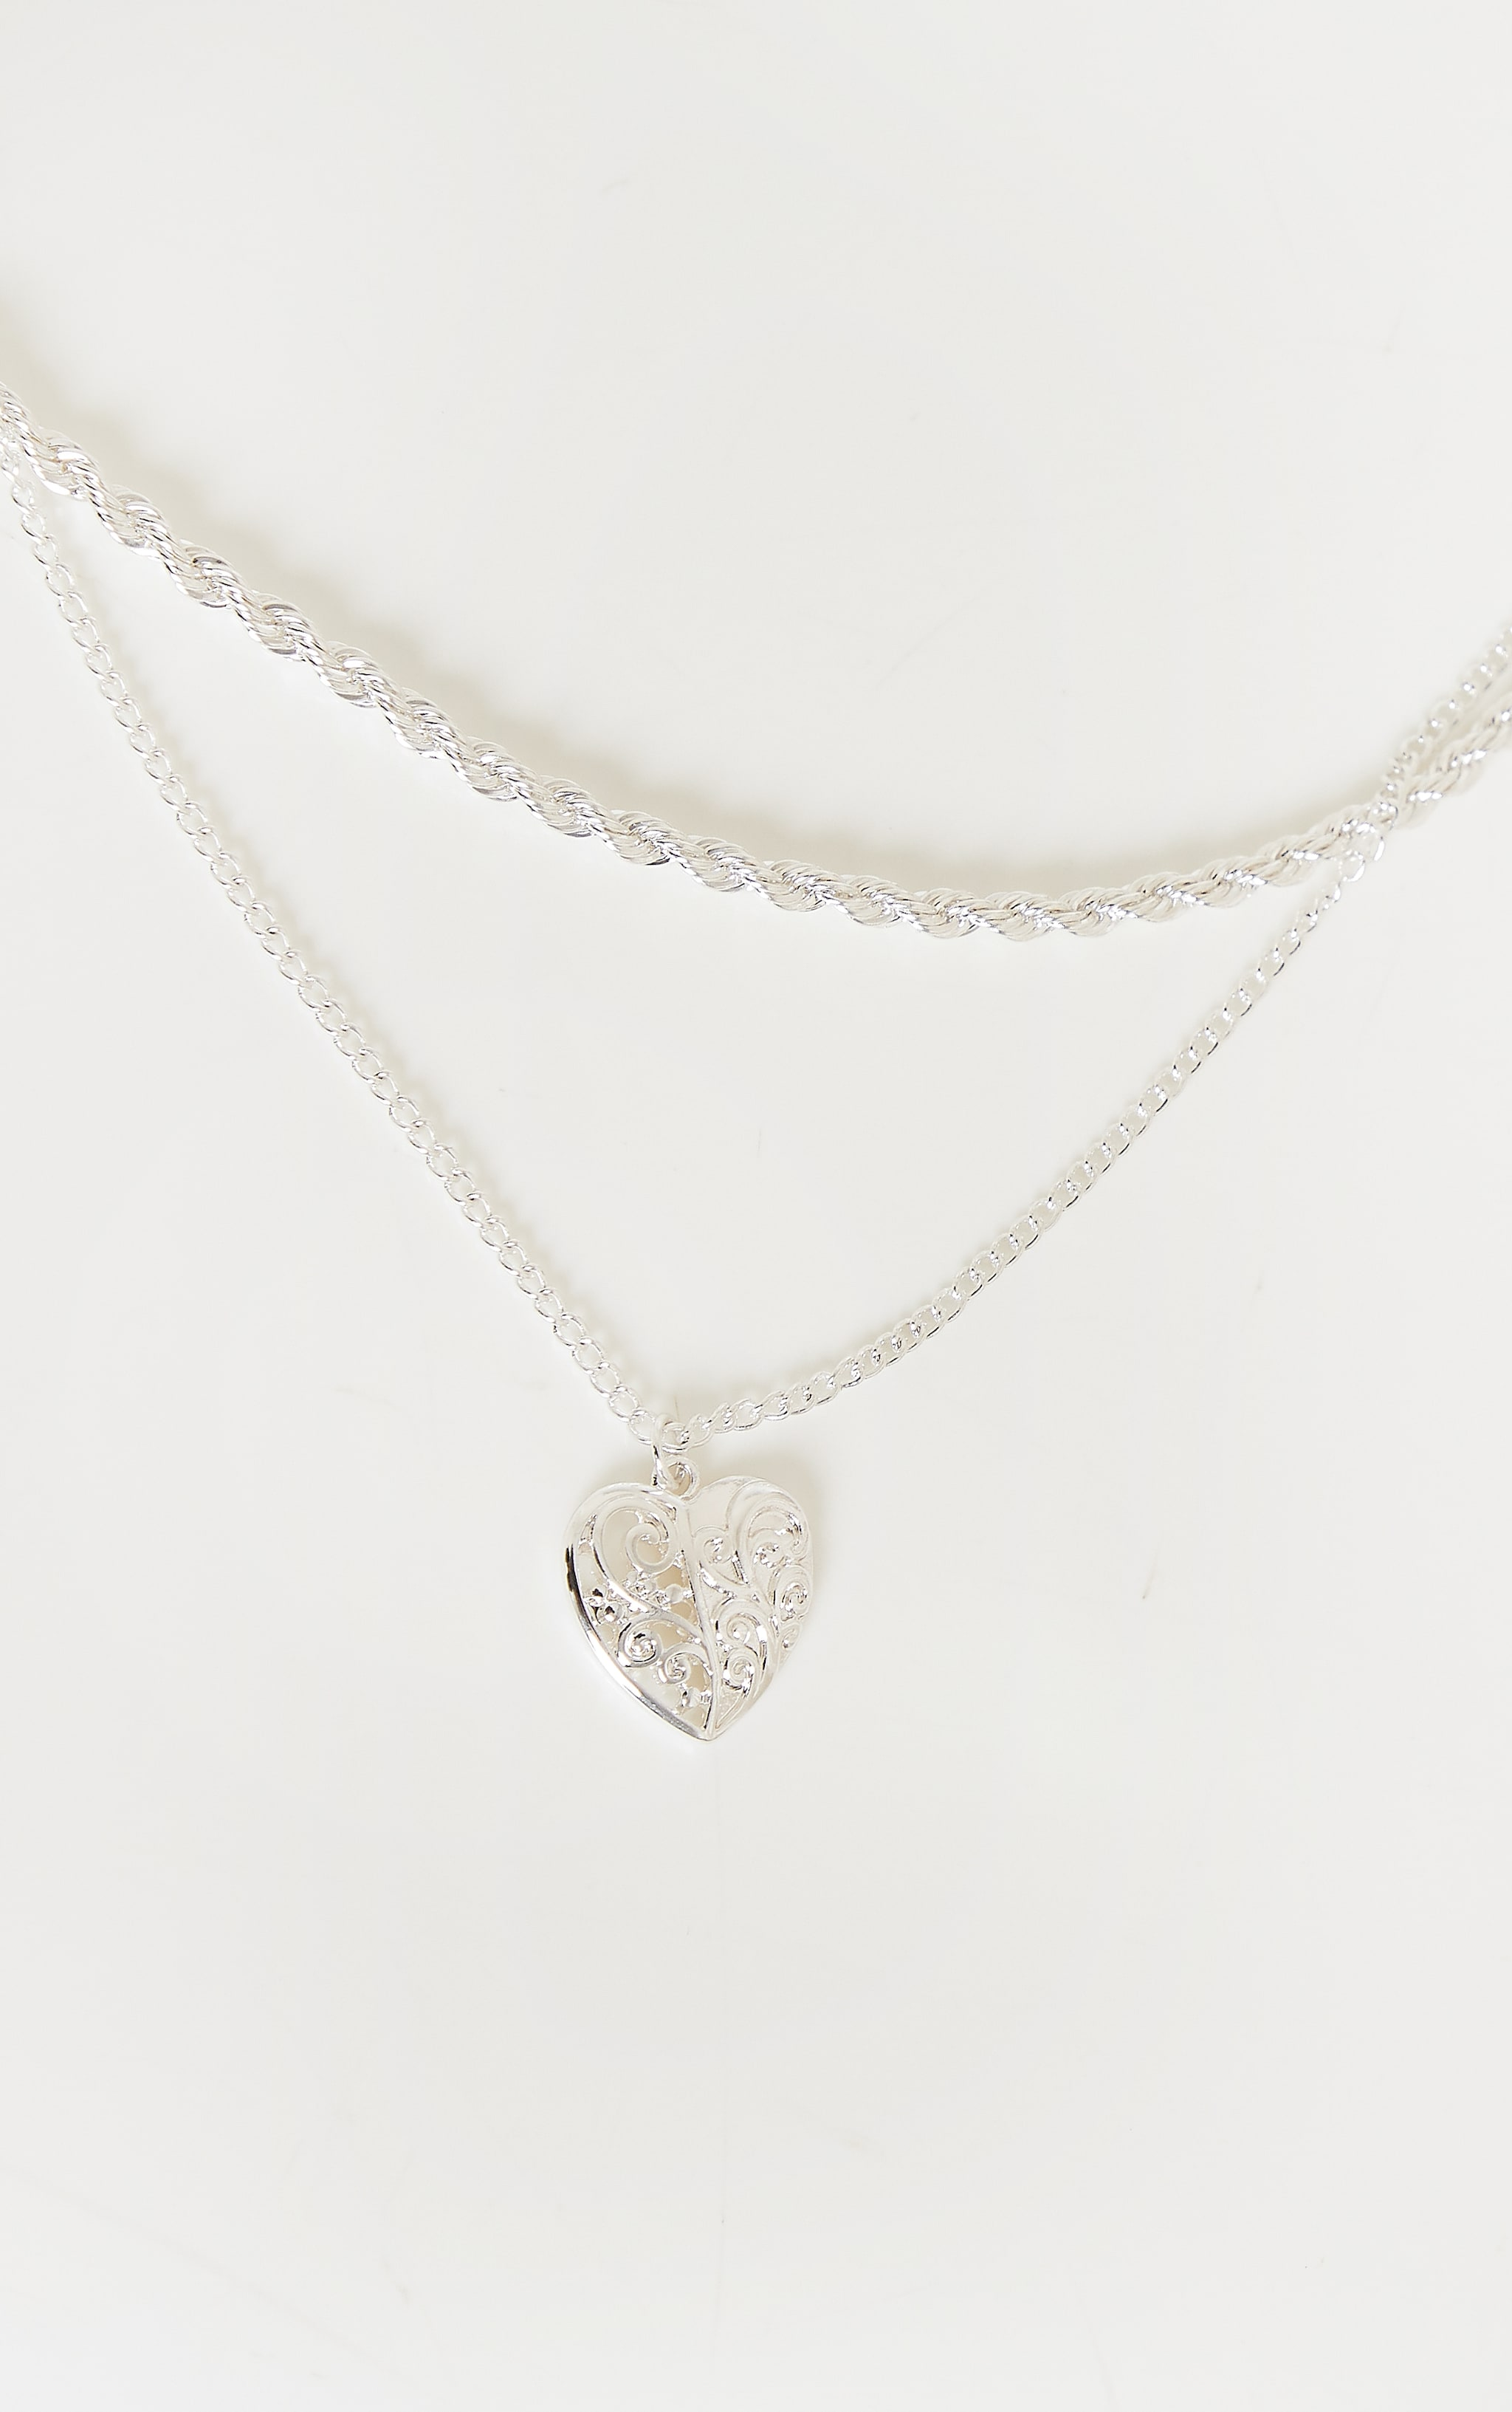 Silver Rope And Heart Charm Layering Necklace 3